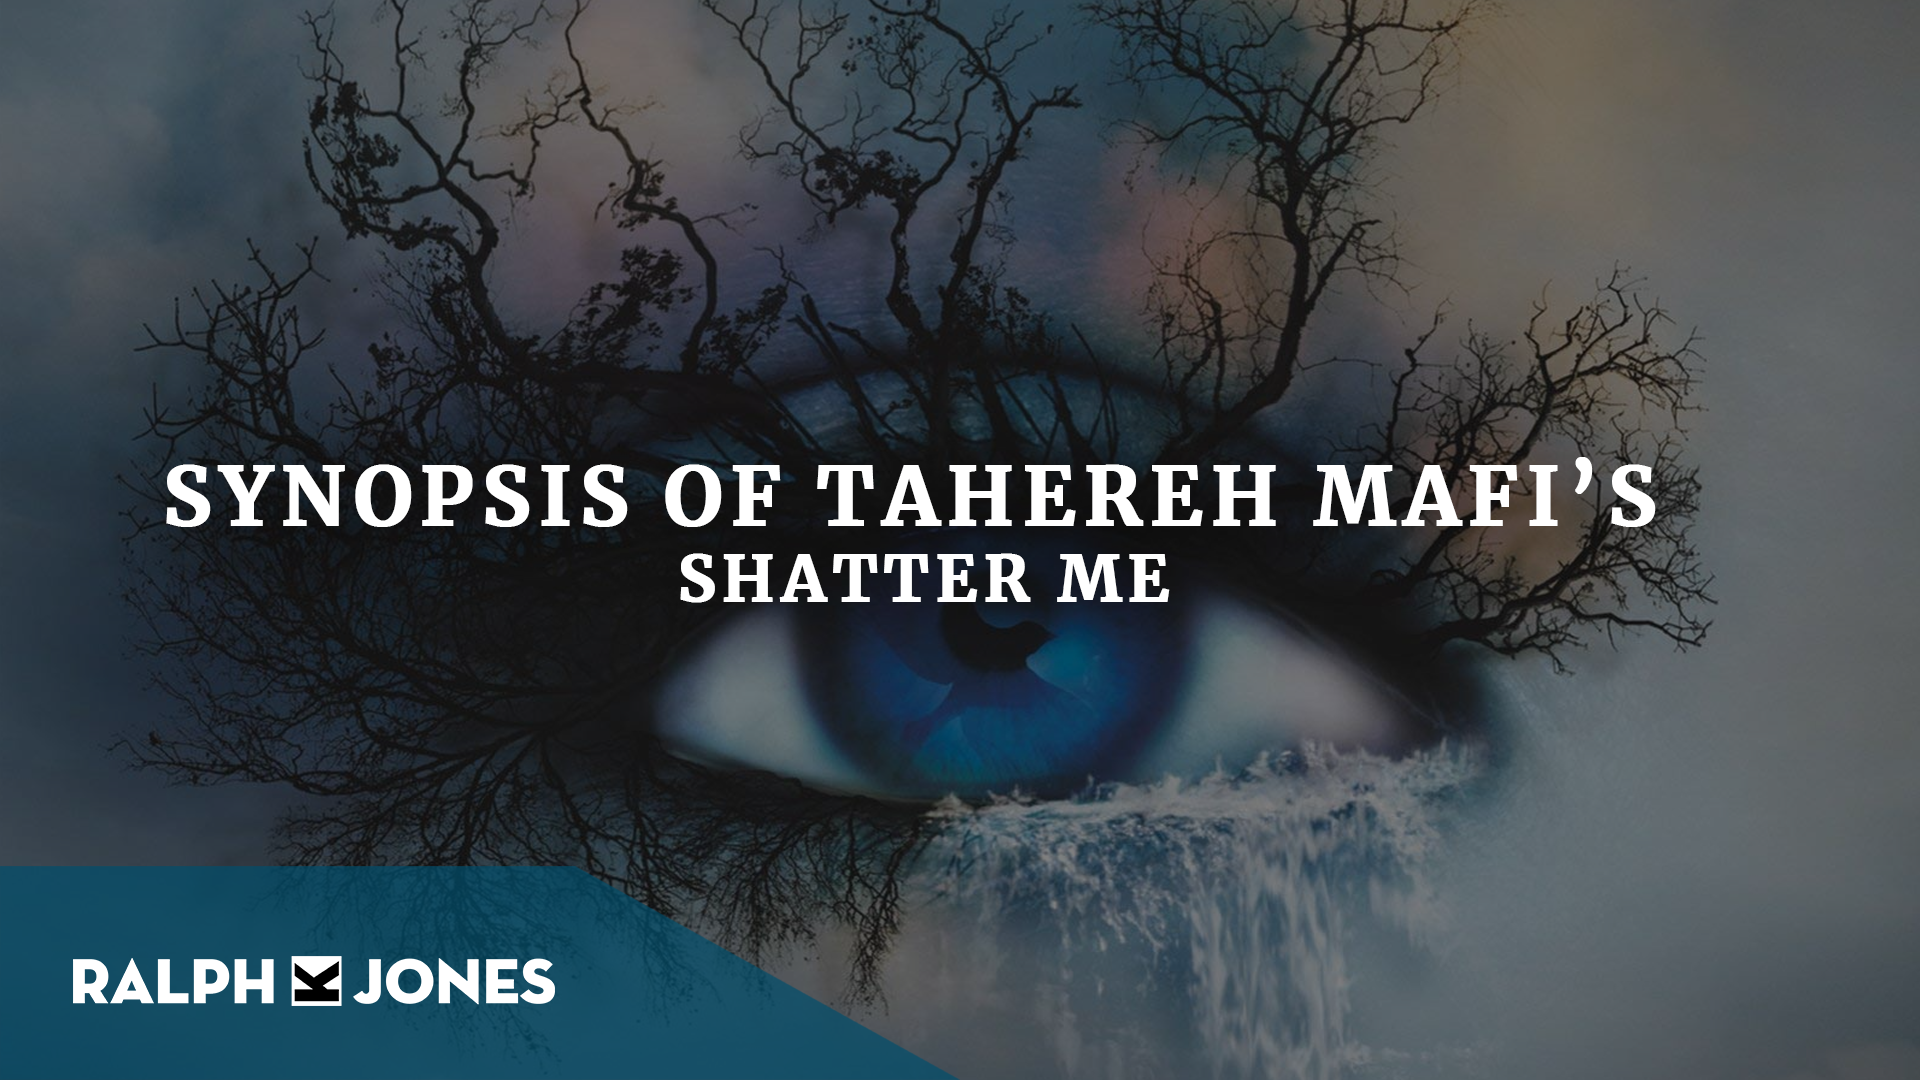 Synopsis of Tahereh Mafi's – Shatter Me